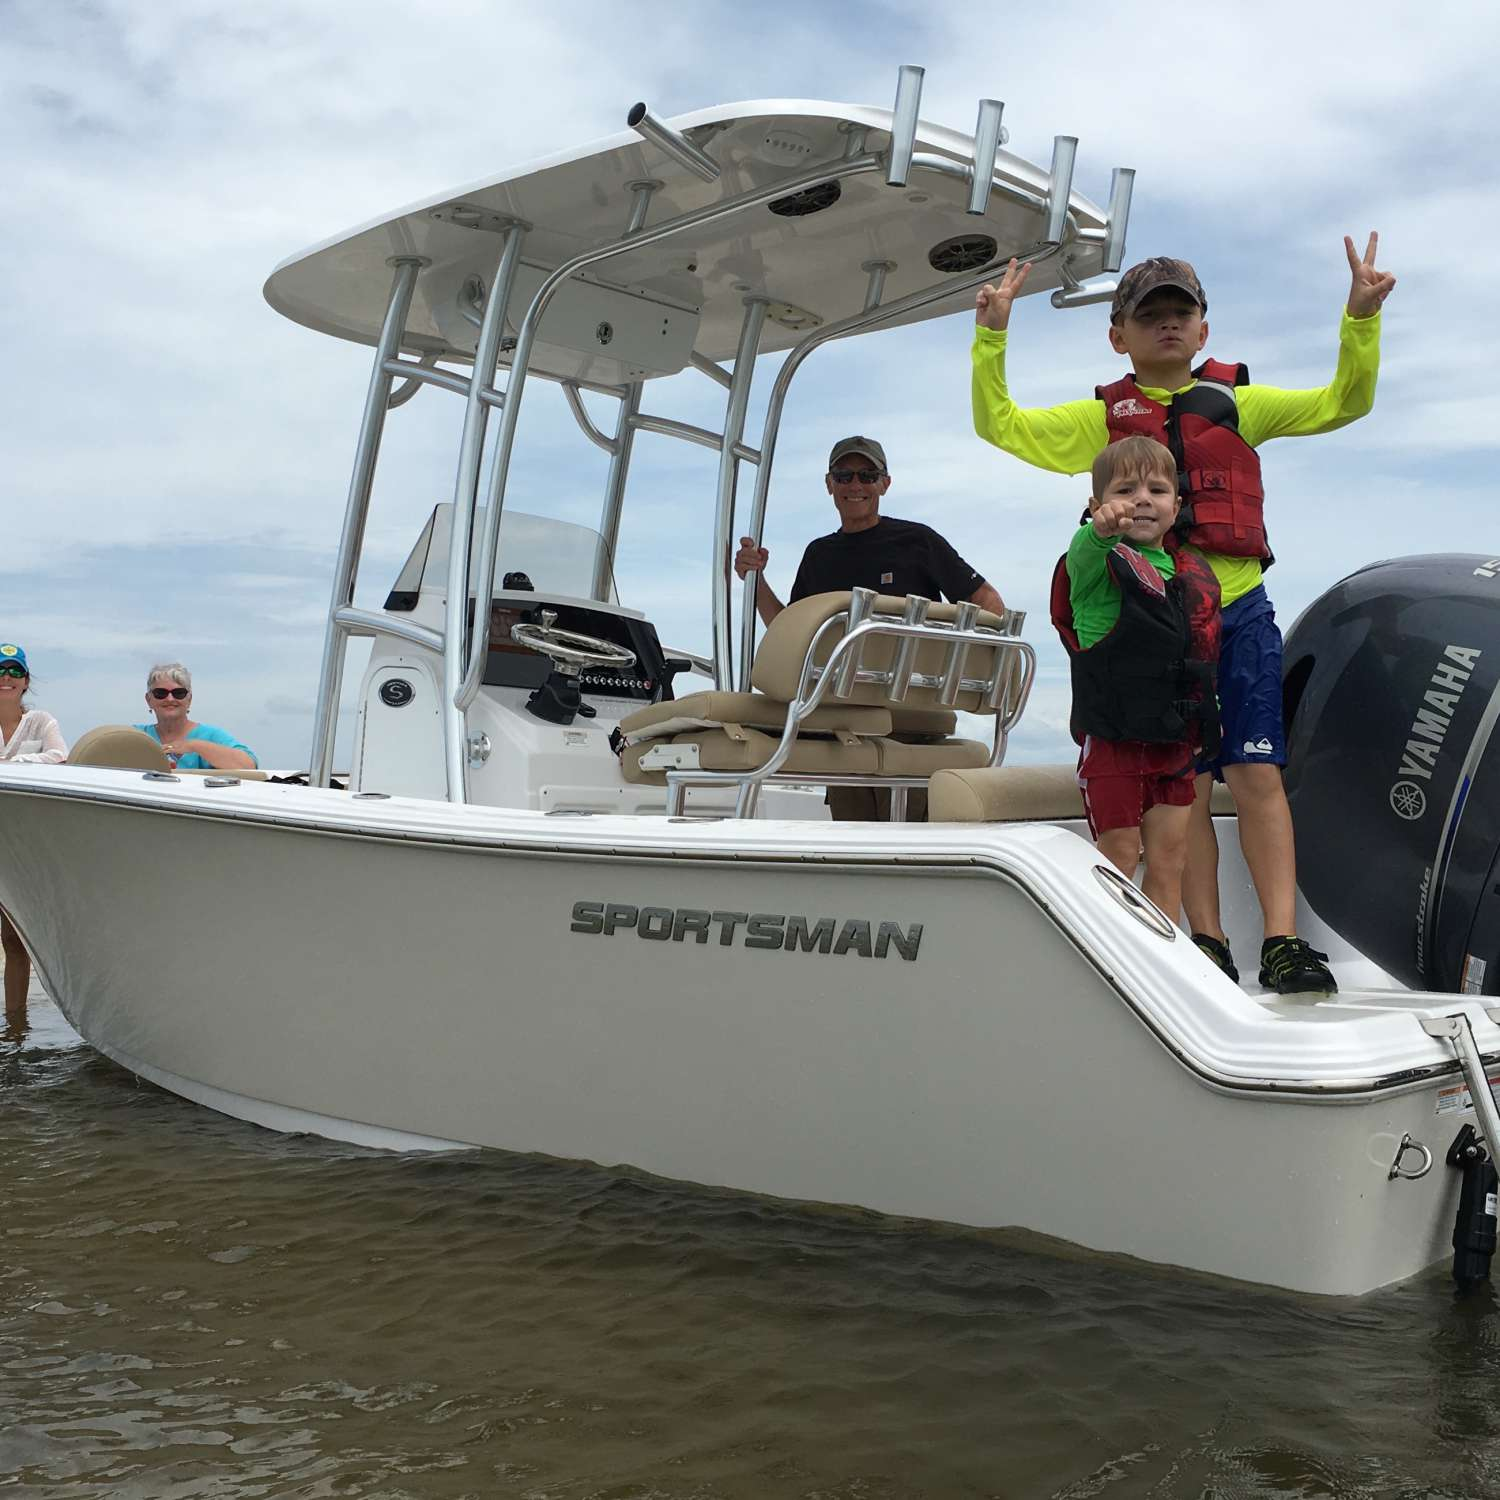 Title: Family Fun - On board their Sportsman Heritage 211 Center Console - Location: Melbourne Beach, Florida. Participating in the Photo Contest #SportsmanJuly2016